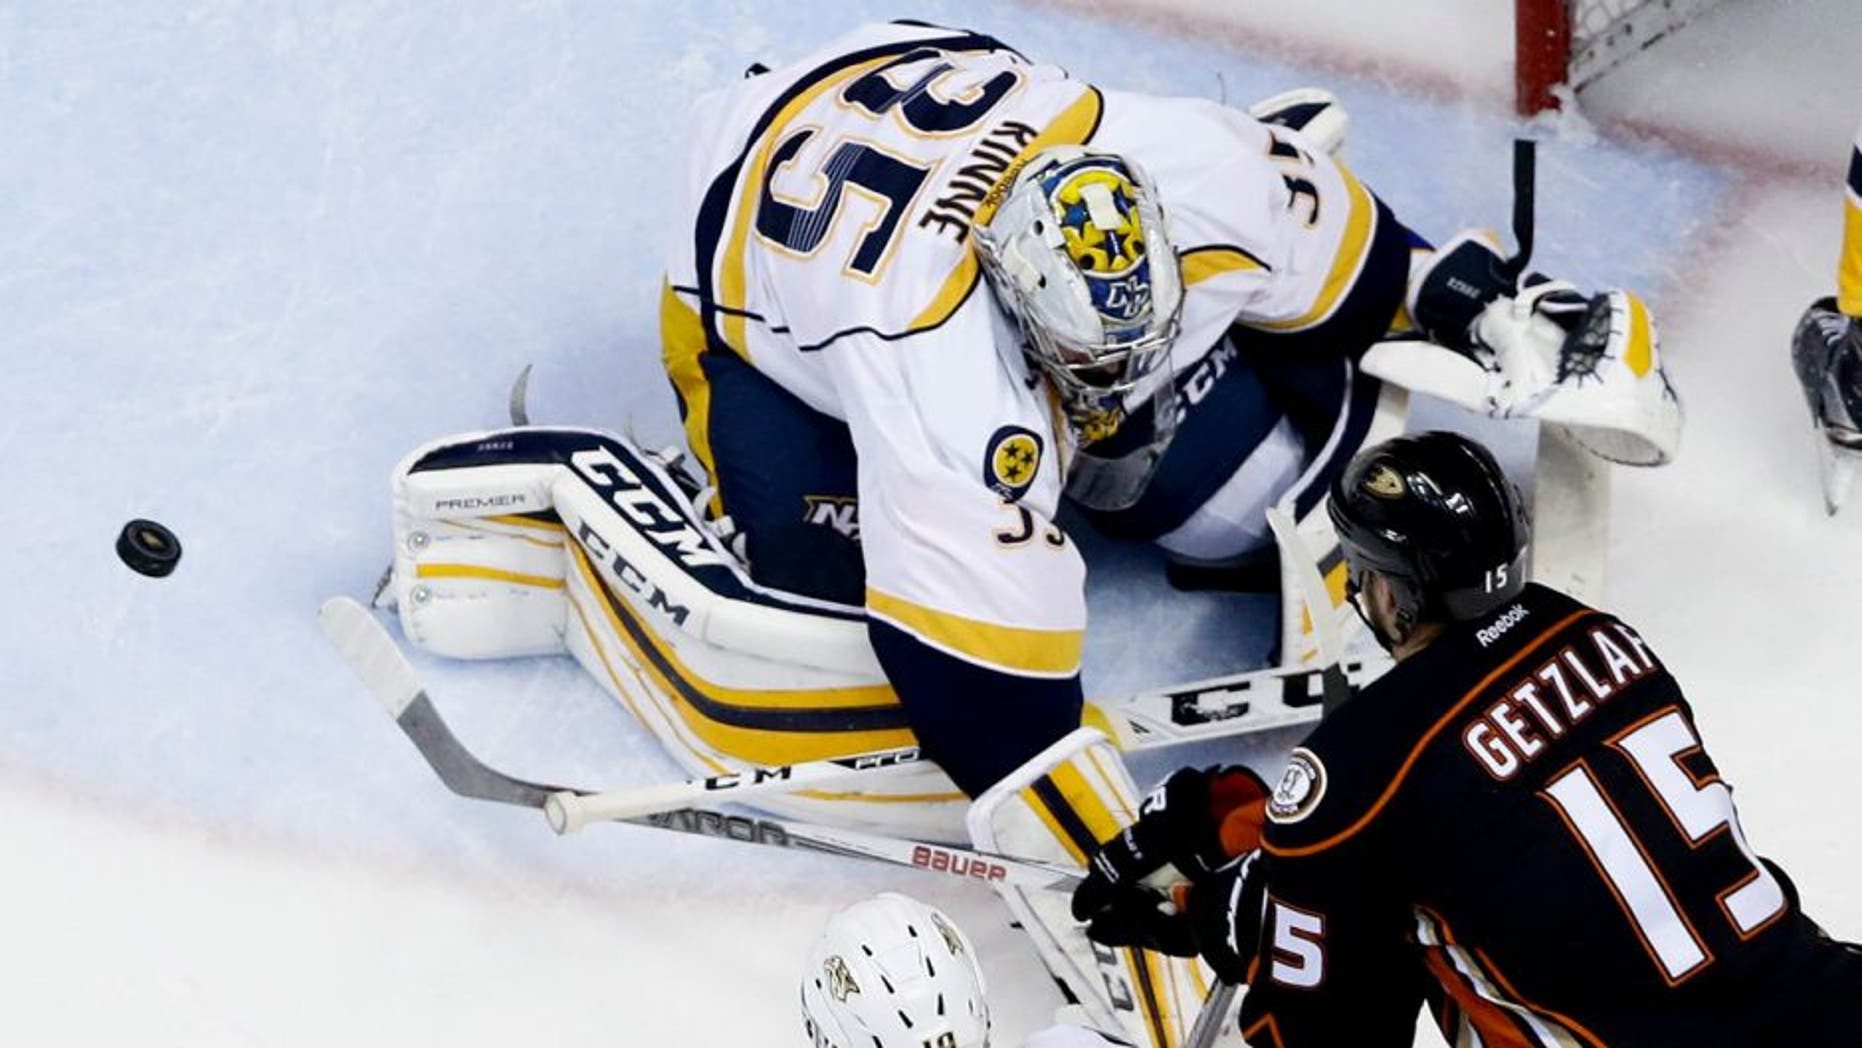 Nashville Predators goalie Pekka Rinne, left, blocks a shot by Anaheim Ducks center Ryan Getzlaf during the second period of Game 2 of an NHL hockey first-round Stanley Cup playoff series in Anaheim, Calif., Sunday, April 17, 2016. (AP Photo/Chris Carlson)